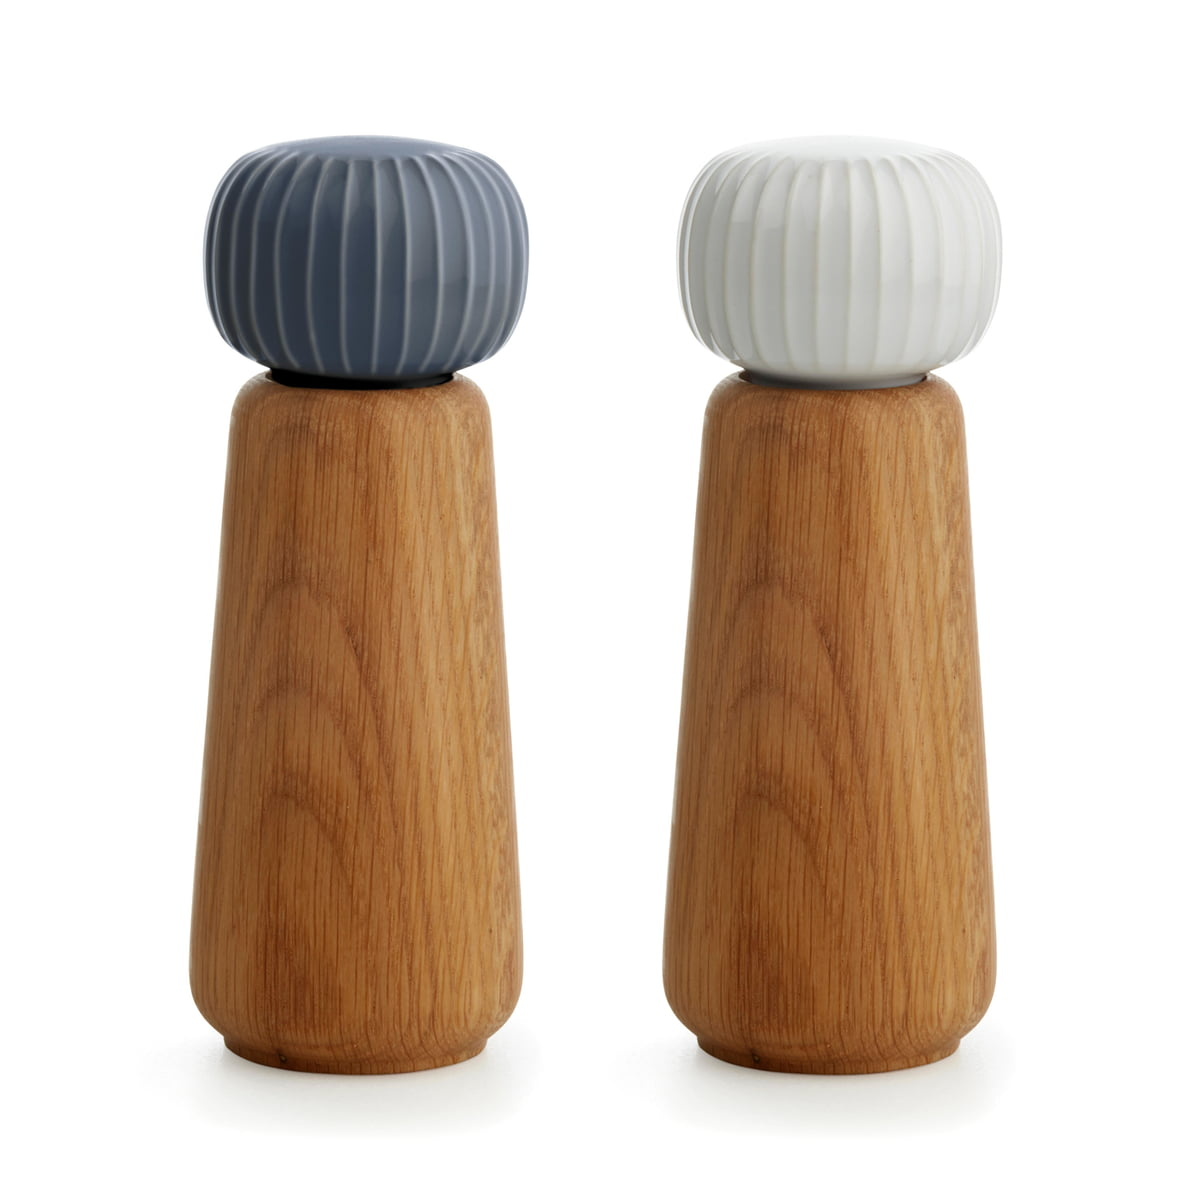 Unique Salt And Pepper Grinders Salt And Pepper Grinders By Kähler